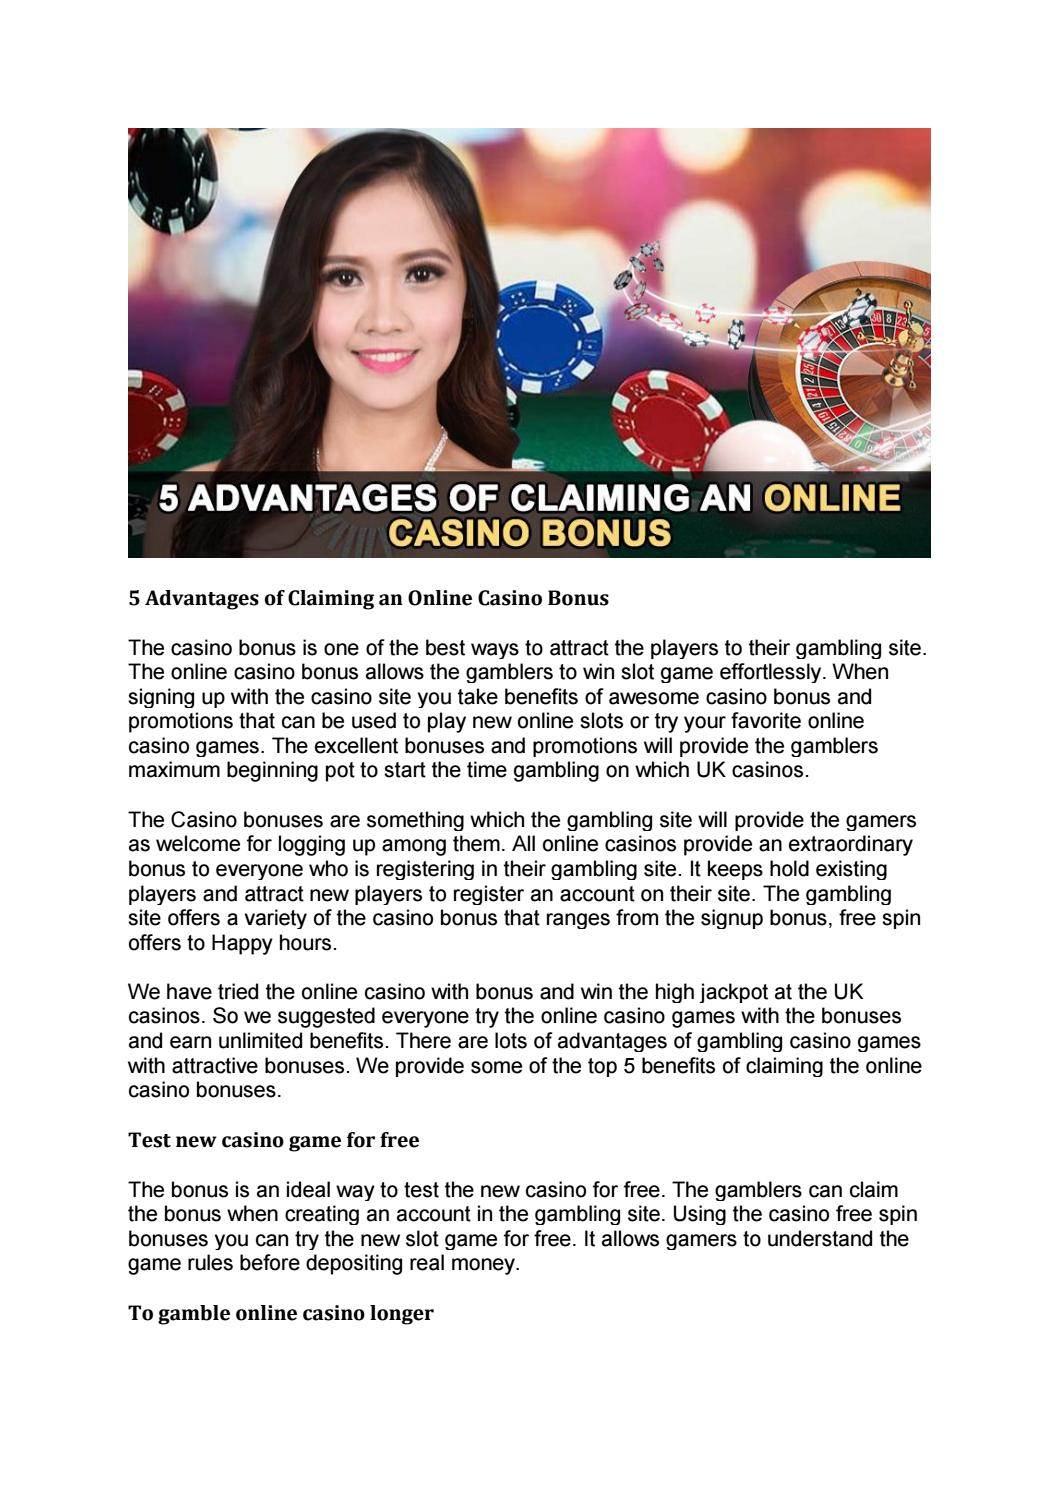 5 Advantages Of Claiming An Online Casino Bonus By Playleon Issuu